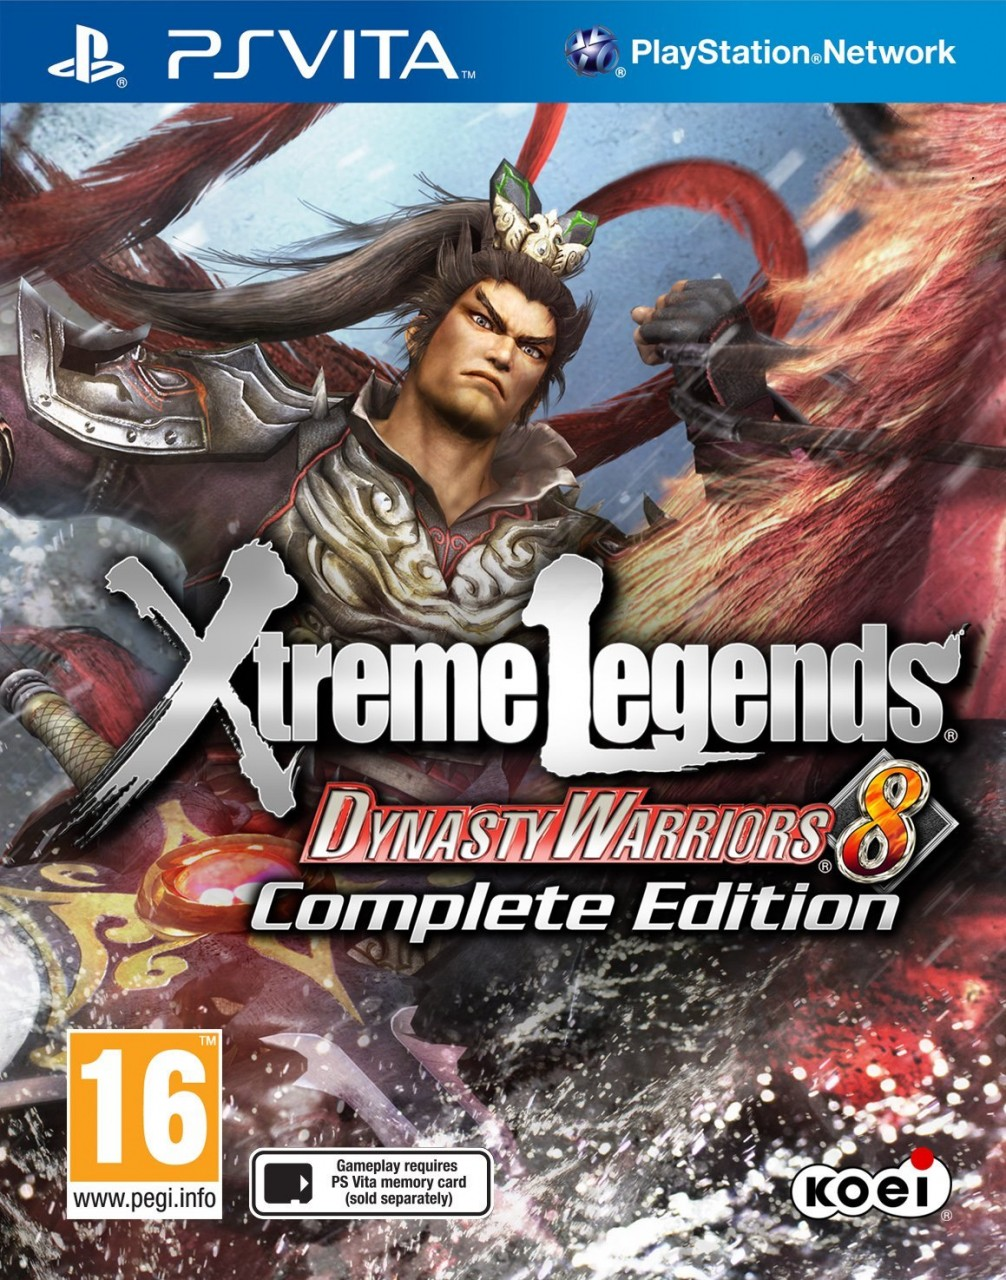 Dynasty Warriors 8: Xtreme Legends - Complete Edition PSVita  36.89